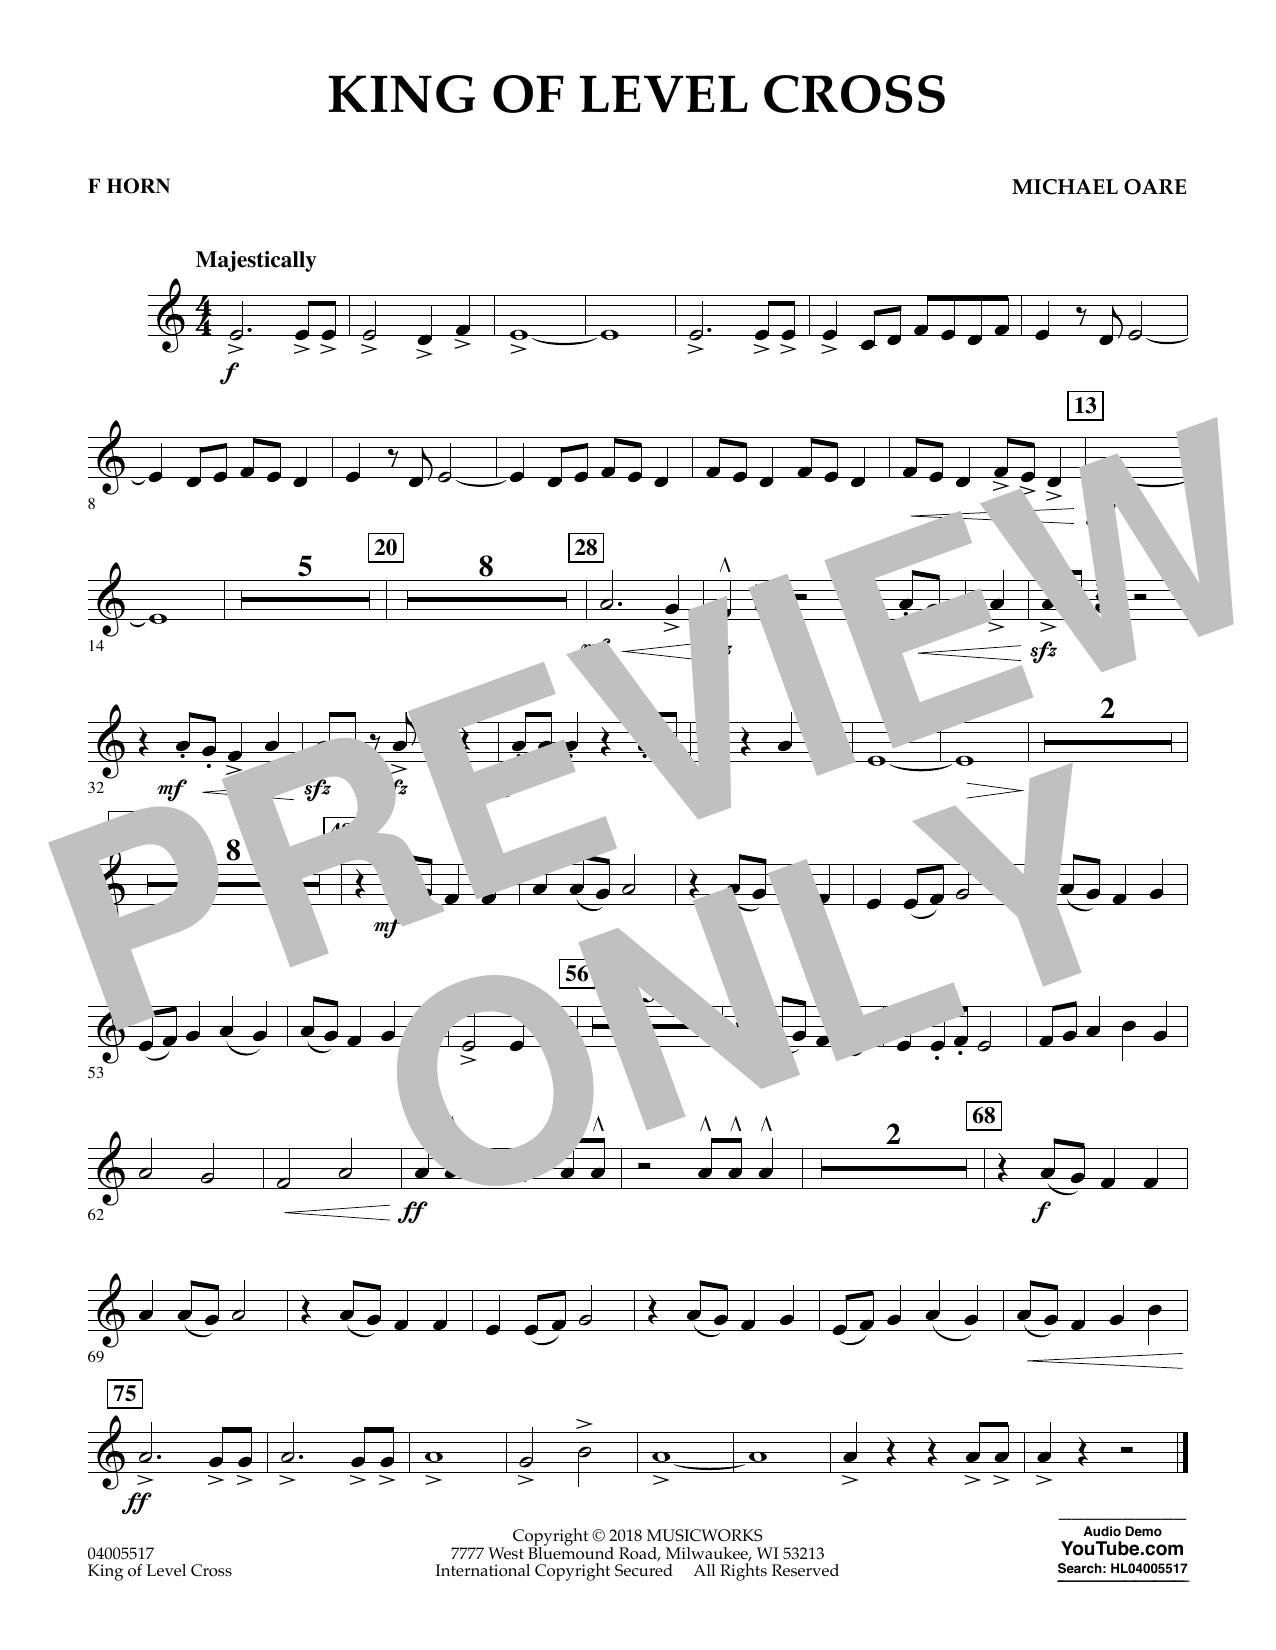 Michael Oare King of Level Cross - F Horn sheet music notes and chords. Download Printable PDF.